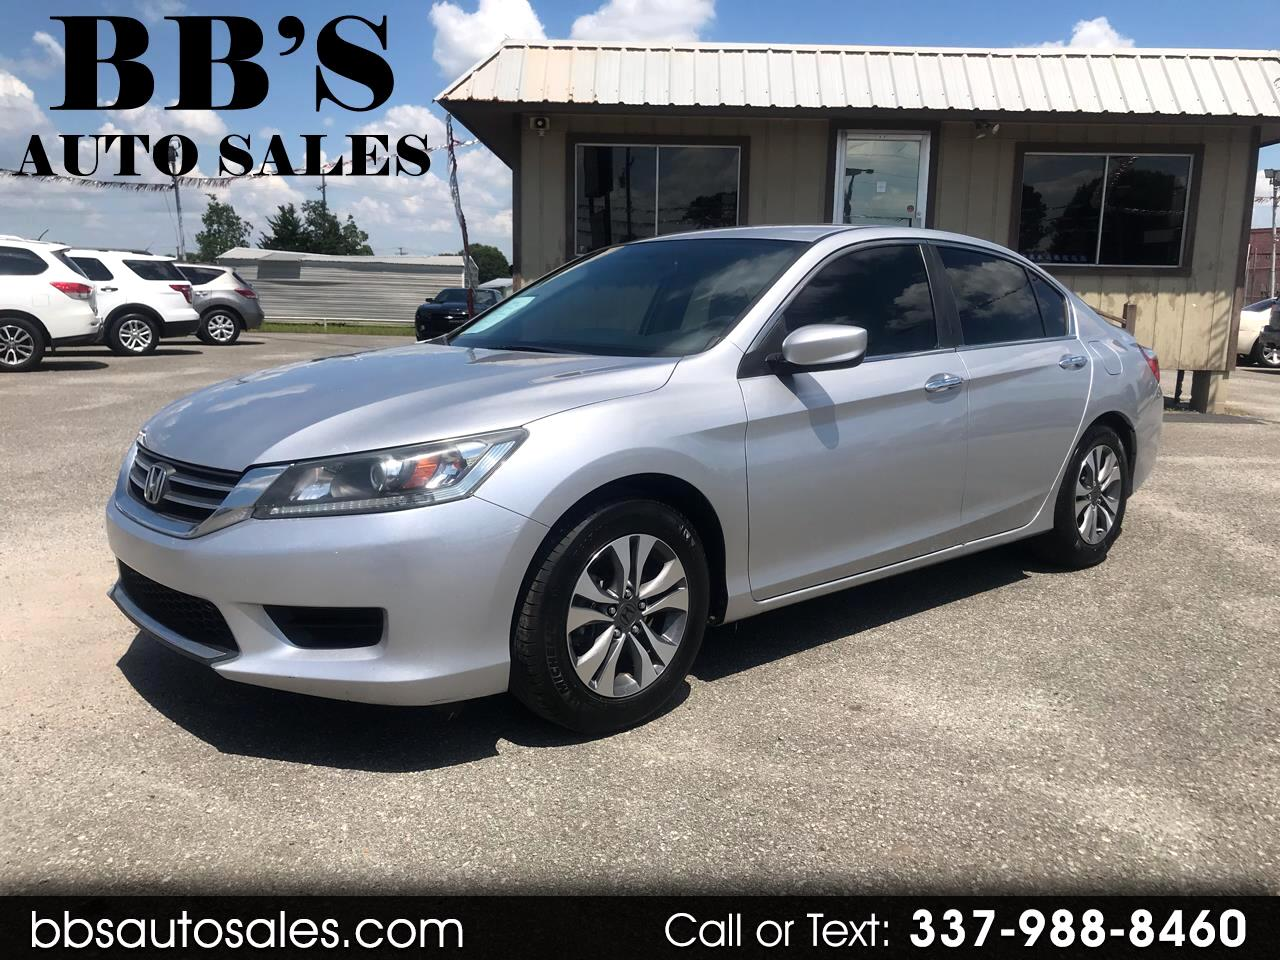 Honda Accord 2013 For Sale >> Used 2013 Honda Accord In Lafayette La Auto Com 1hgcr2f37da026807